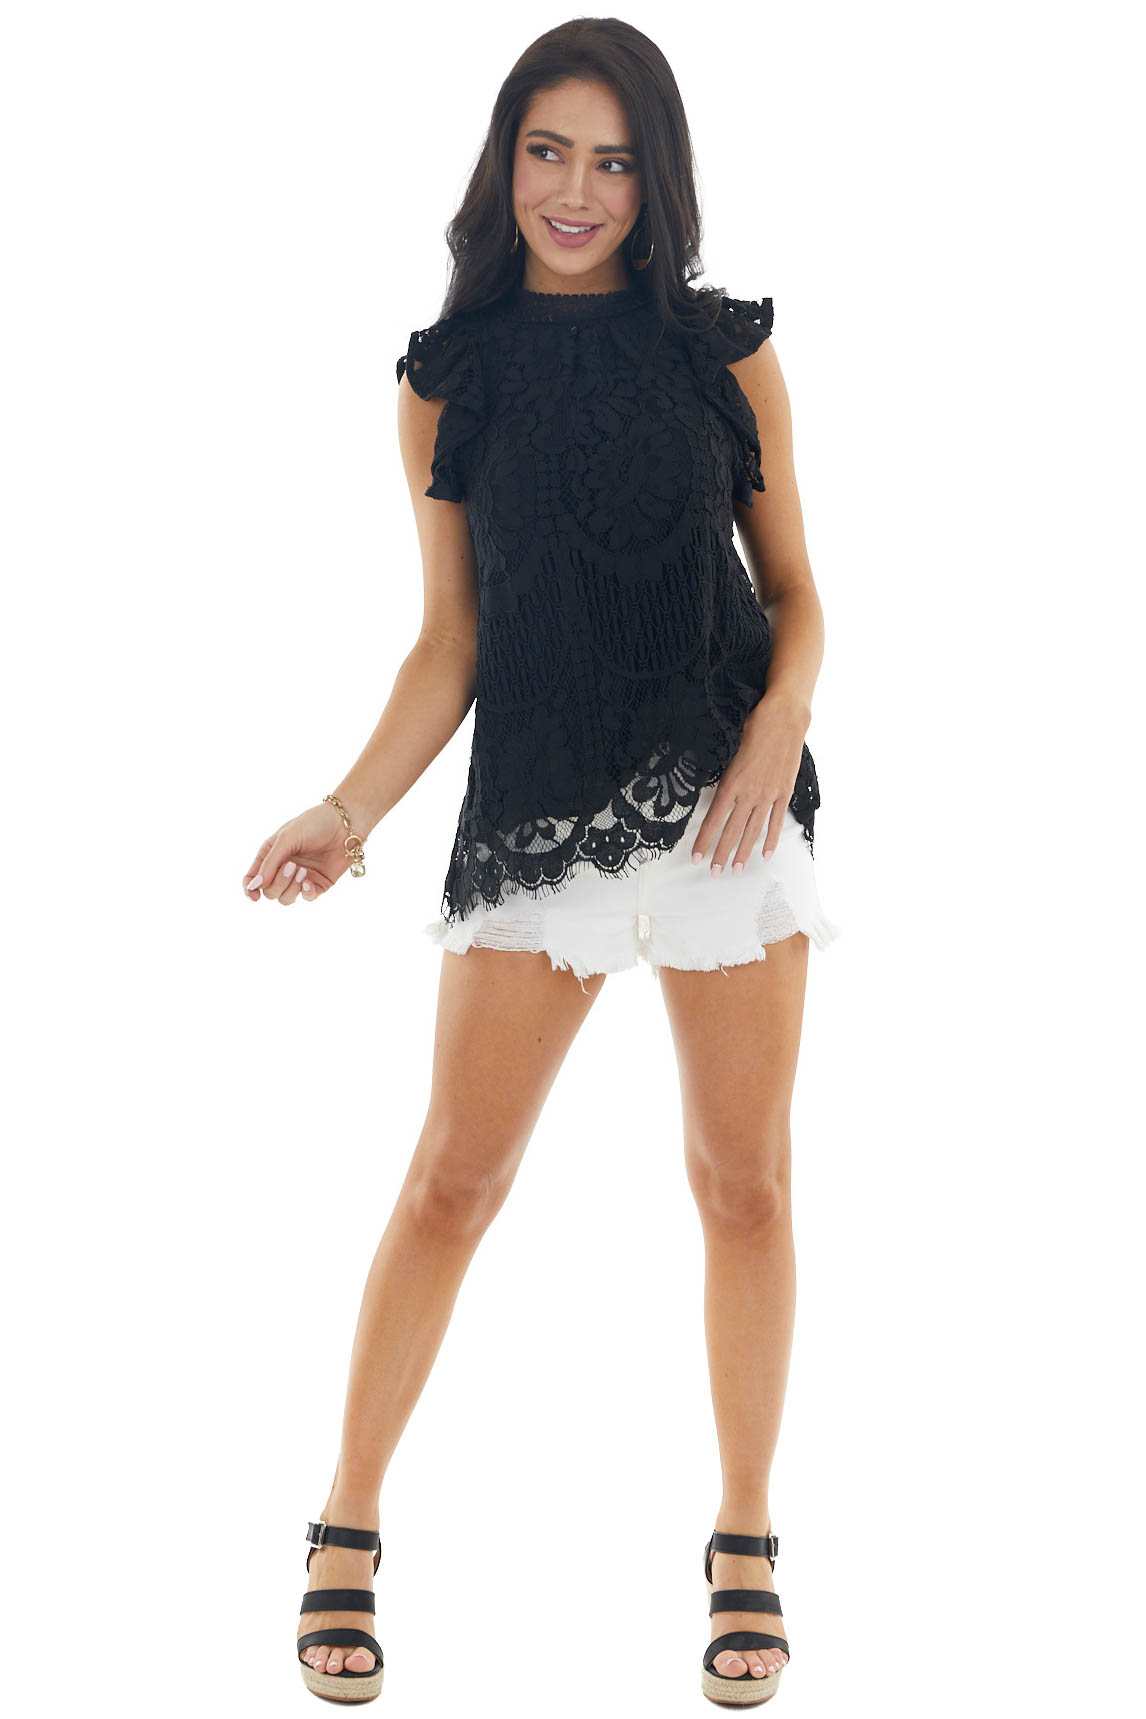 Black Lace Ruffle Cap Sleeve Blouse with High NecklineBlack Lace Ruffle Cap Sleeve Blouse with High Neckline